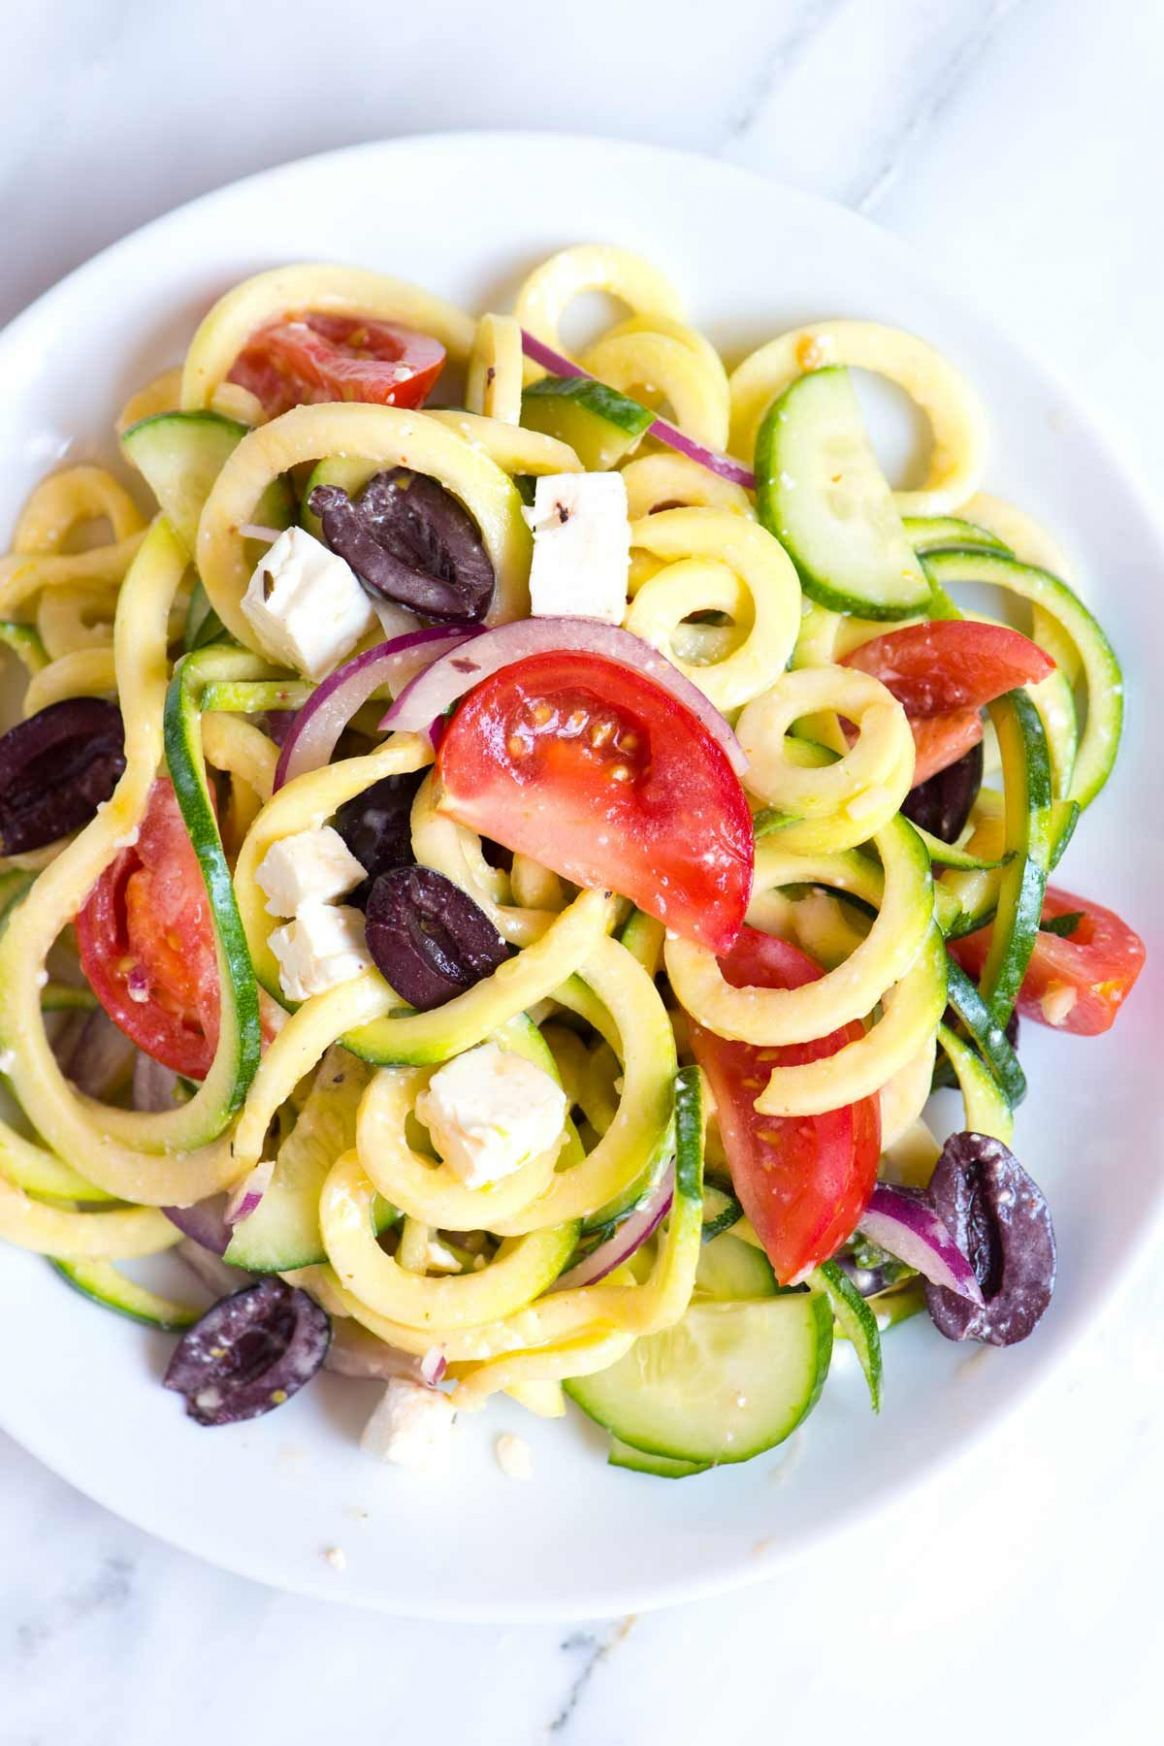 Mediterranean Zucchini Noodles Salad - Salad Recipes With Zucchini Noodles